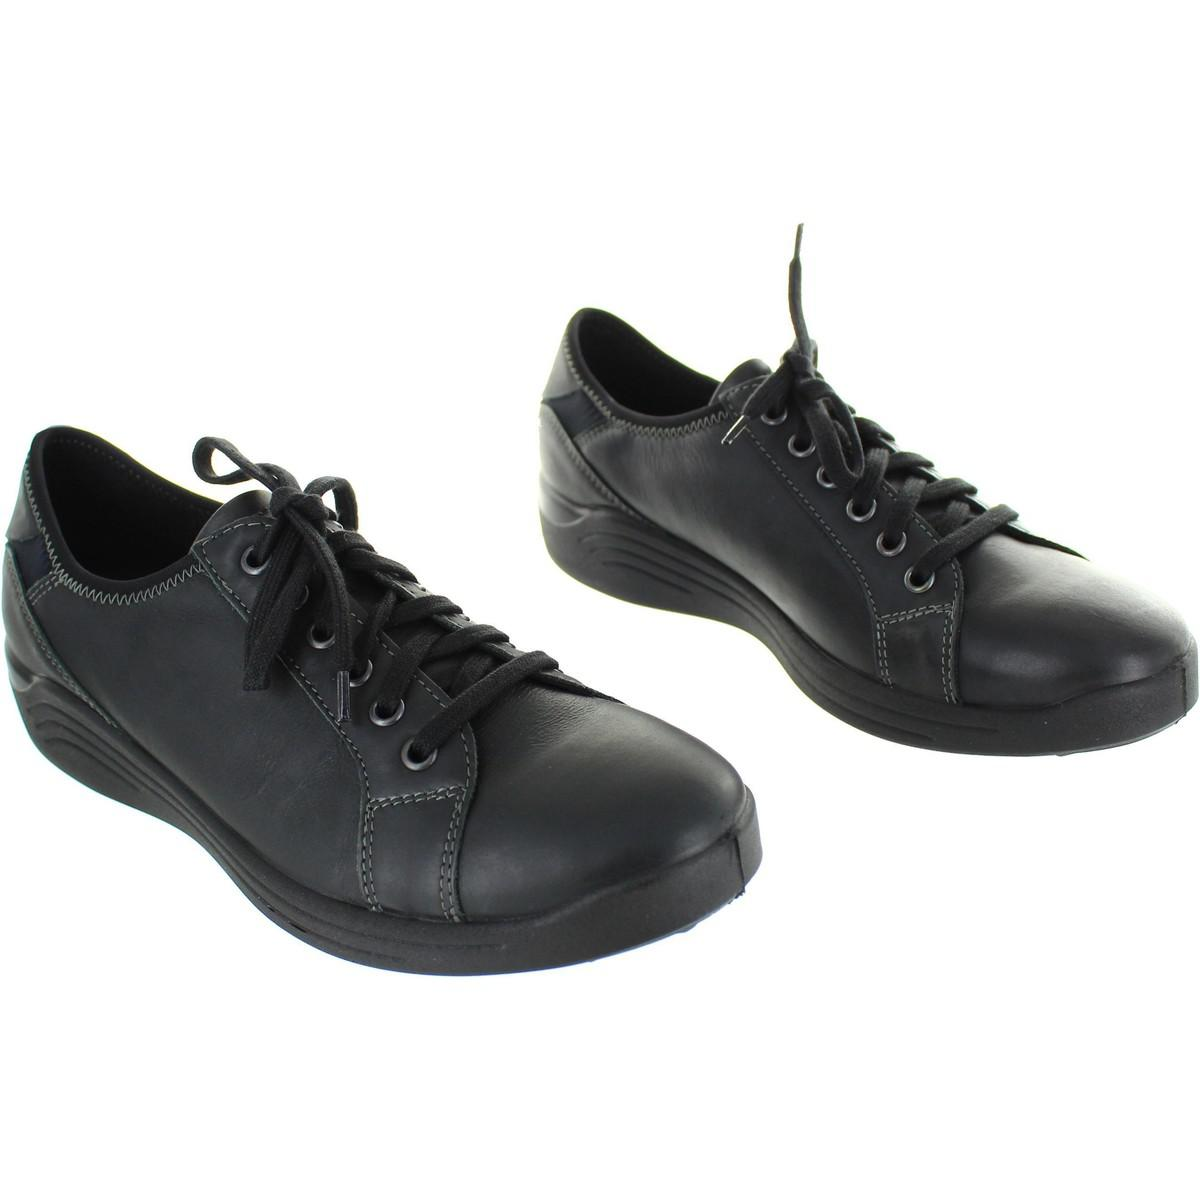 Romika Lace-up shpes Madera 22 outlet really discount get authentic cheap sale exclusive buy cheap store discounts LLWdwoJxd